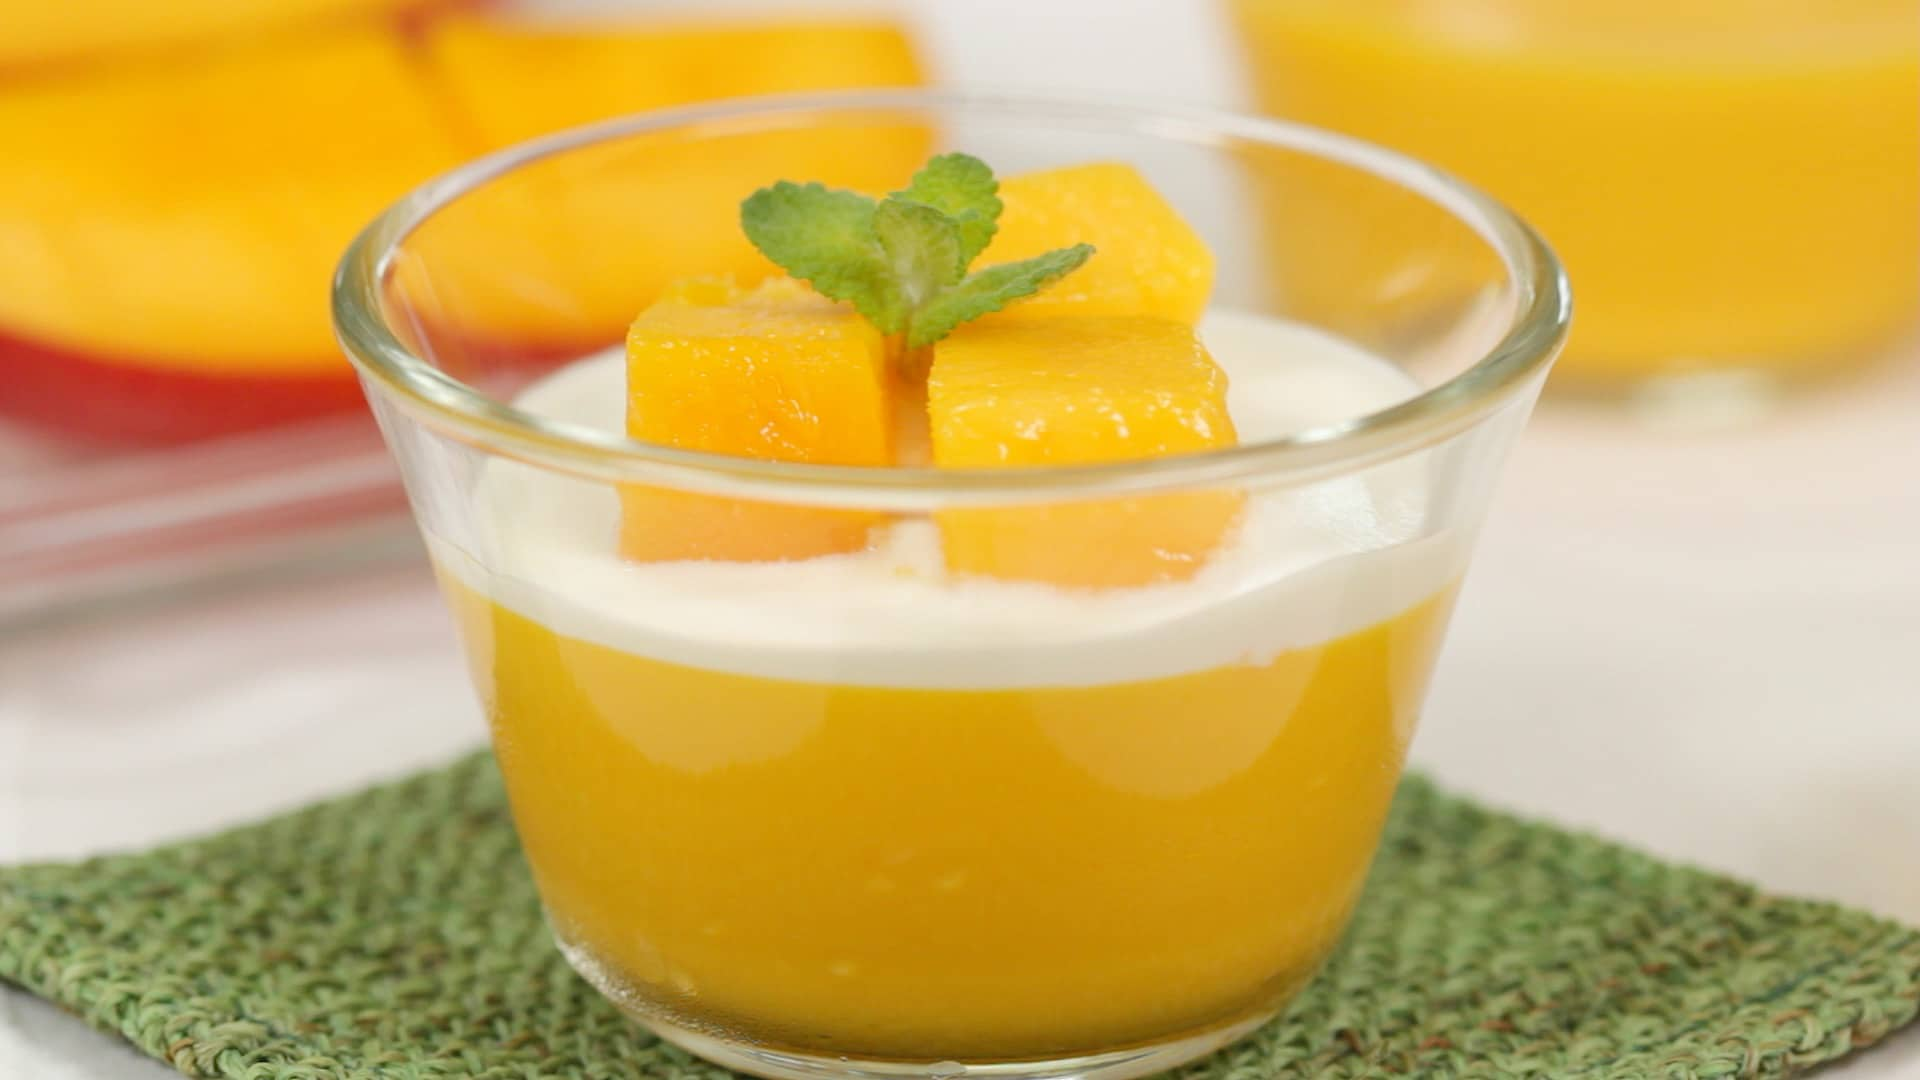 Mango Pudding Recipe Scrumptious Summer Dessert Cooking With Dog